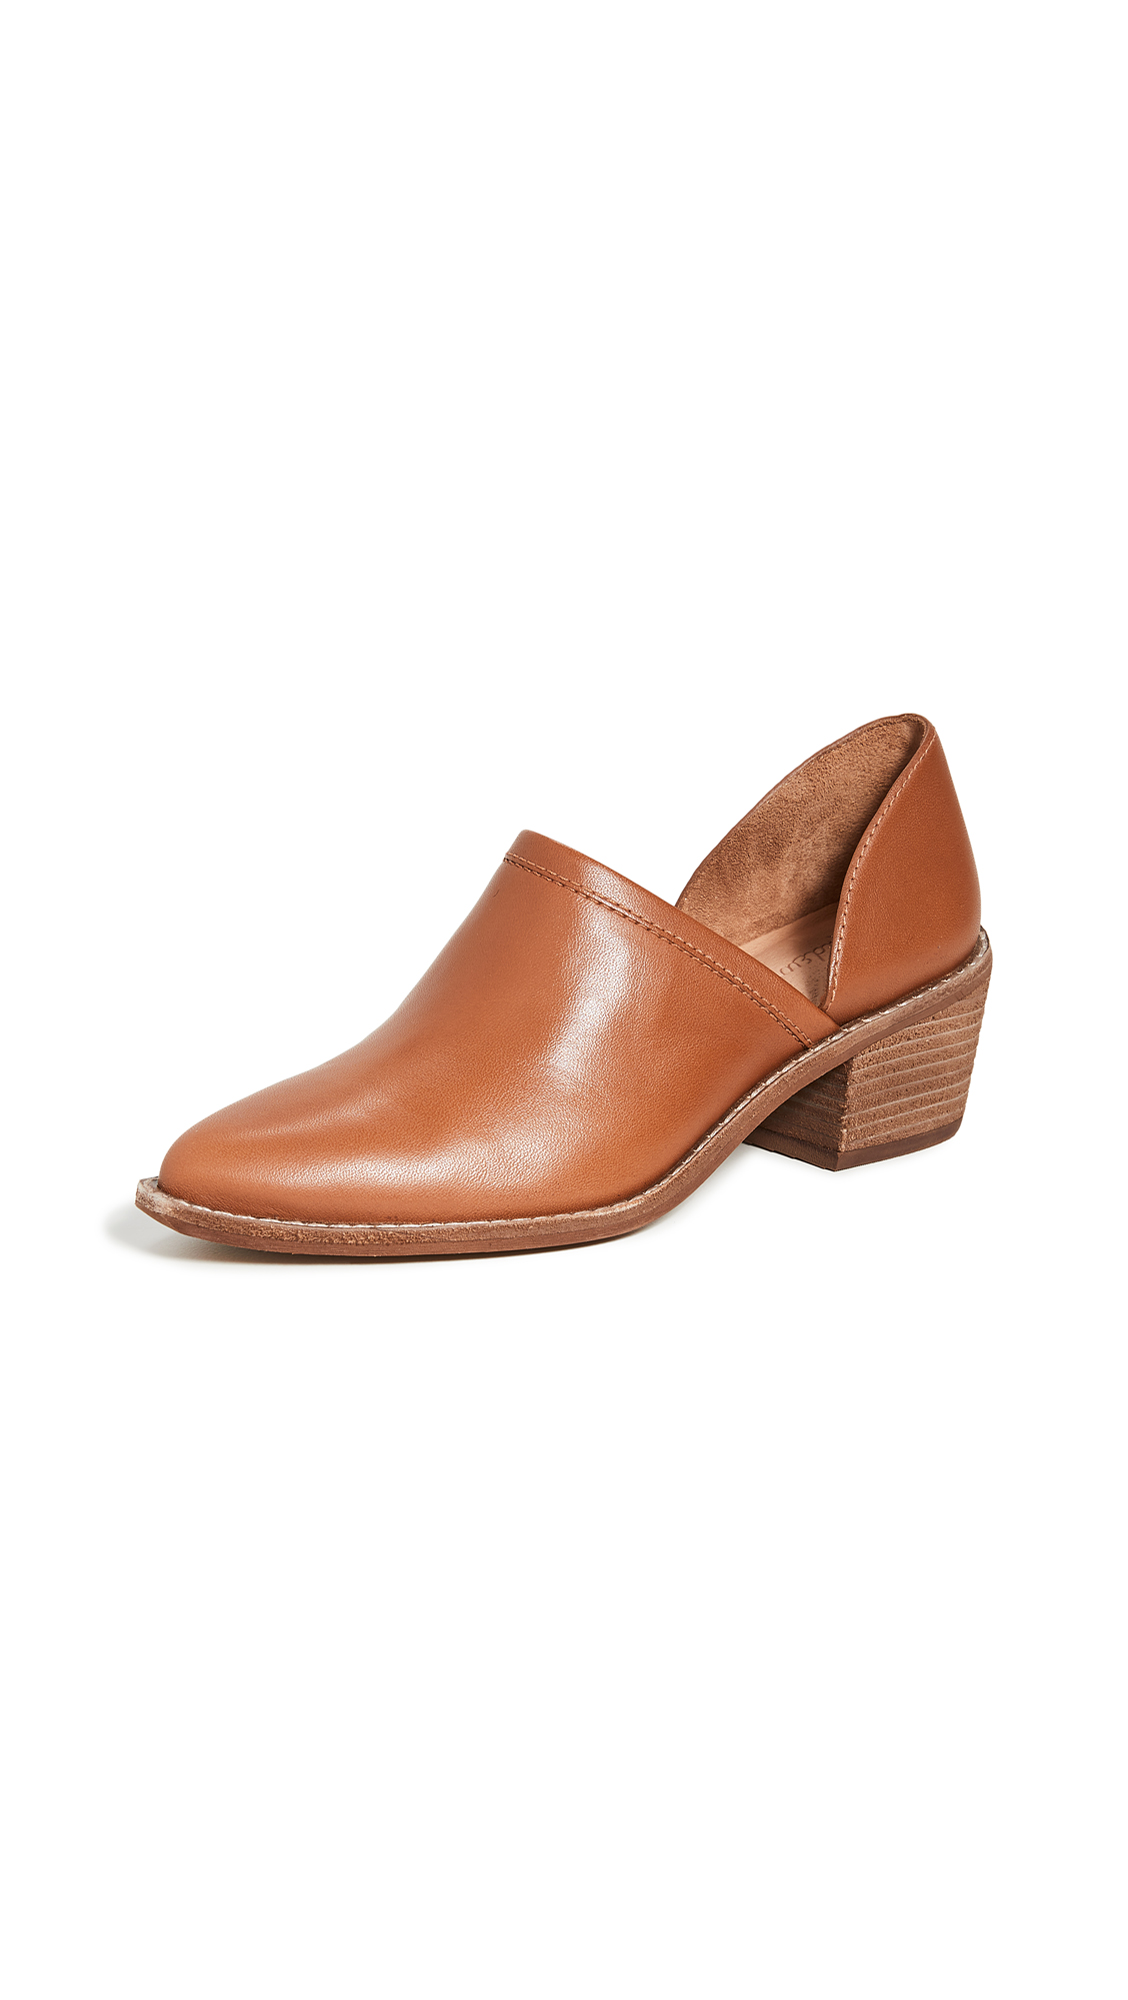 Madewell The Brady Lowcut Booties - 30% Off Sale